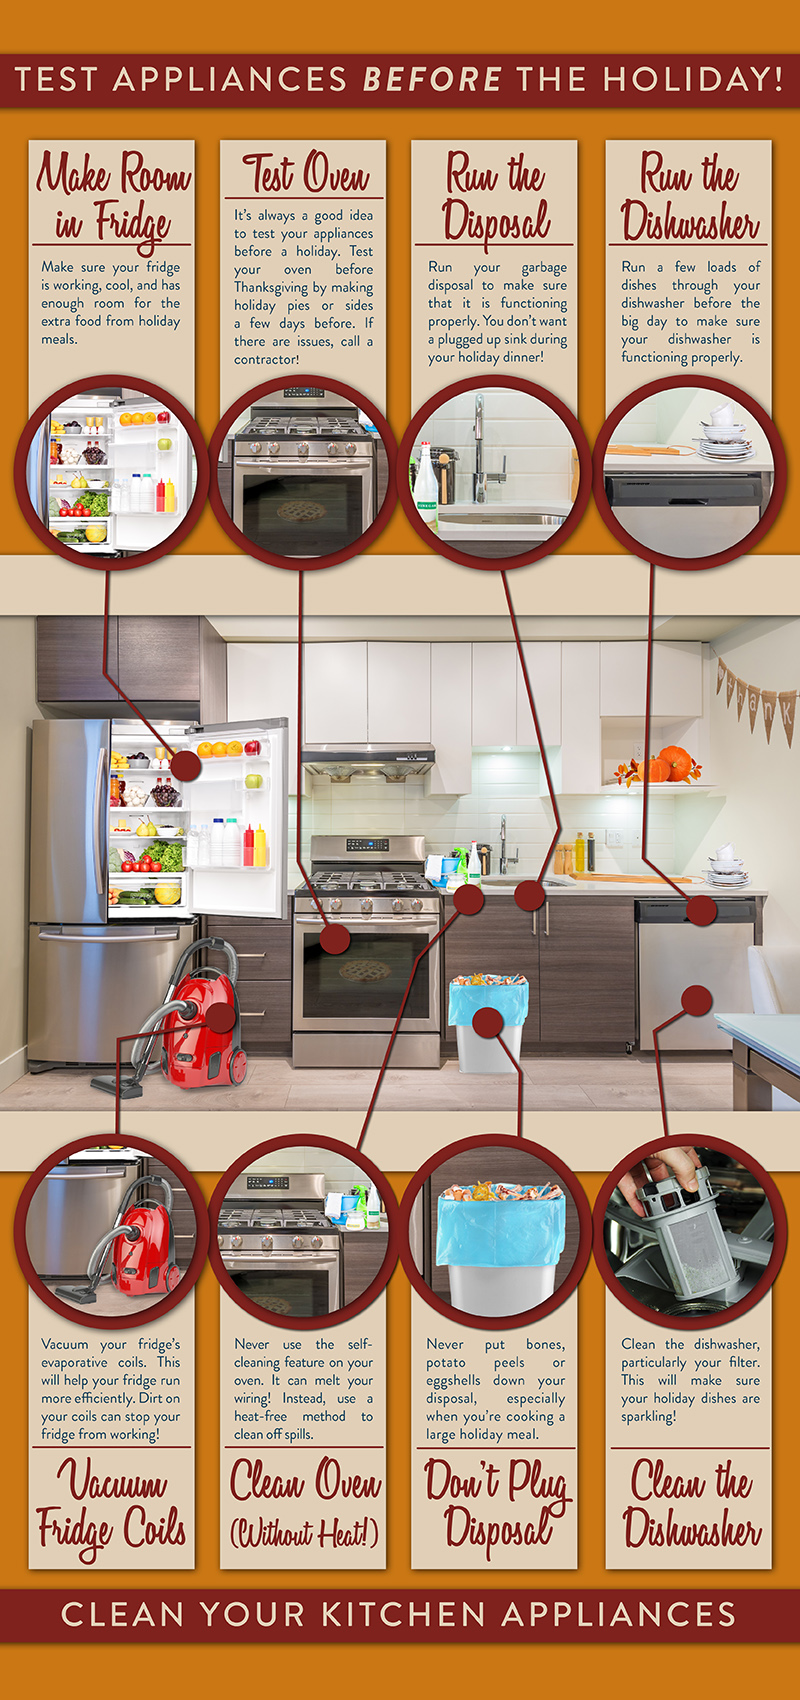 Clean and test your kitchen appliances before the holiday season.